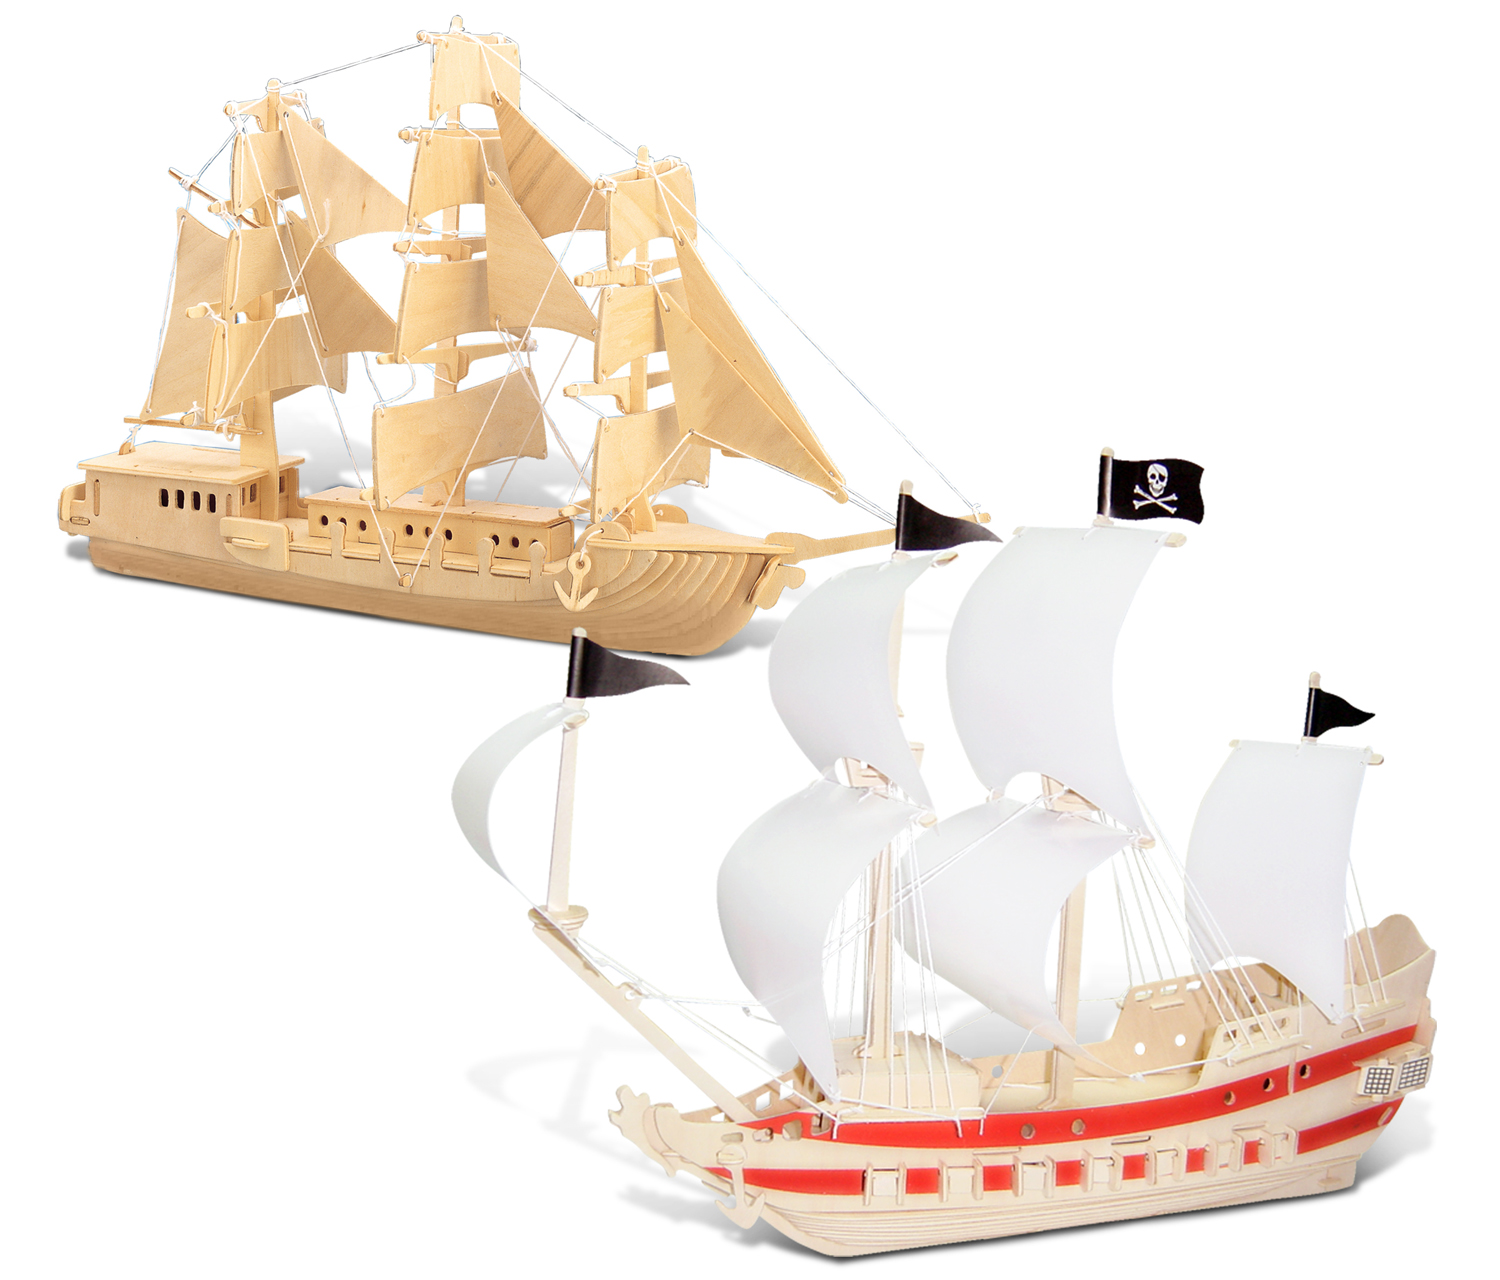 Puzzled European Sailing Boat and Pirate Ship Wooden 3D Puzzle Construction Kit by Puzzled Inc